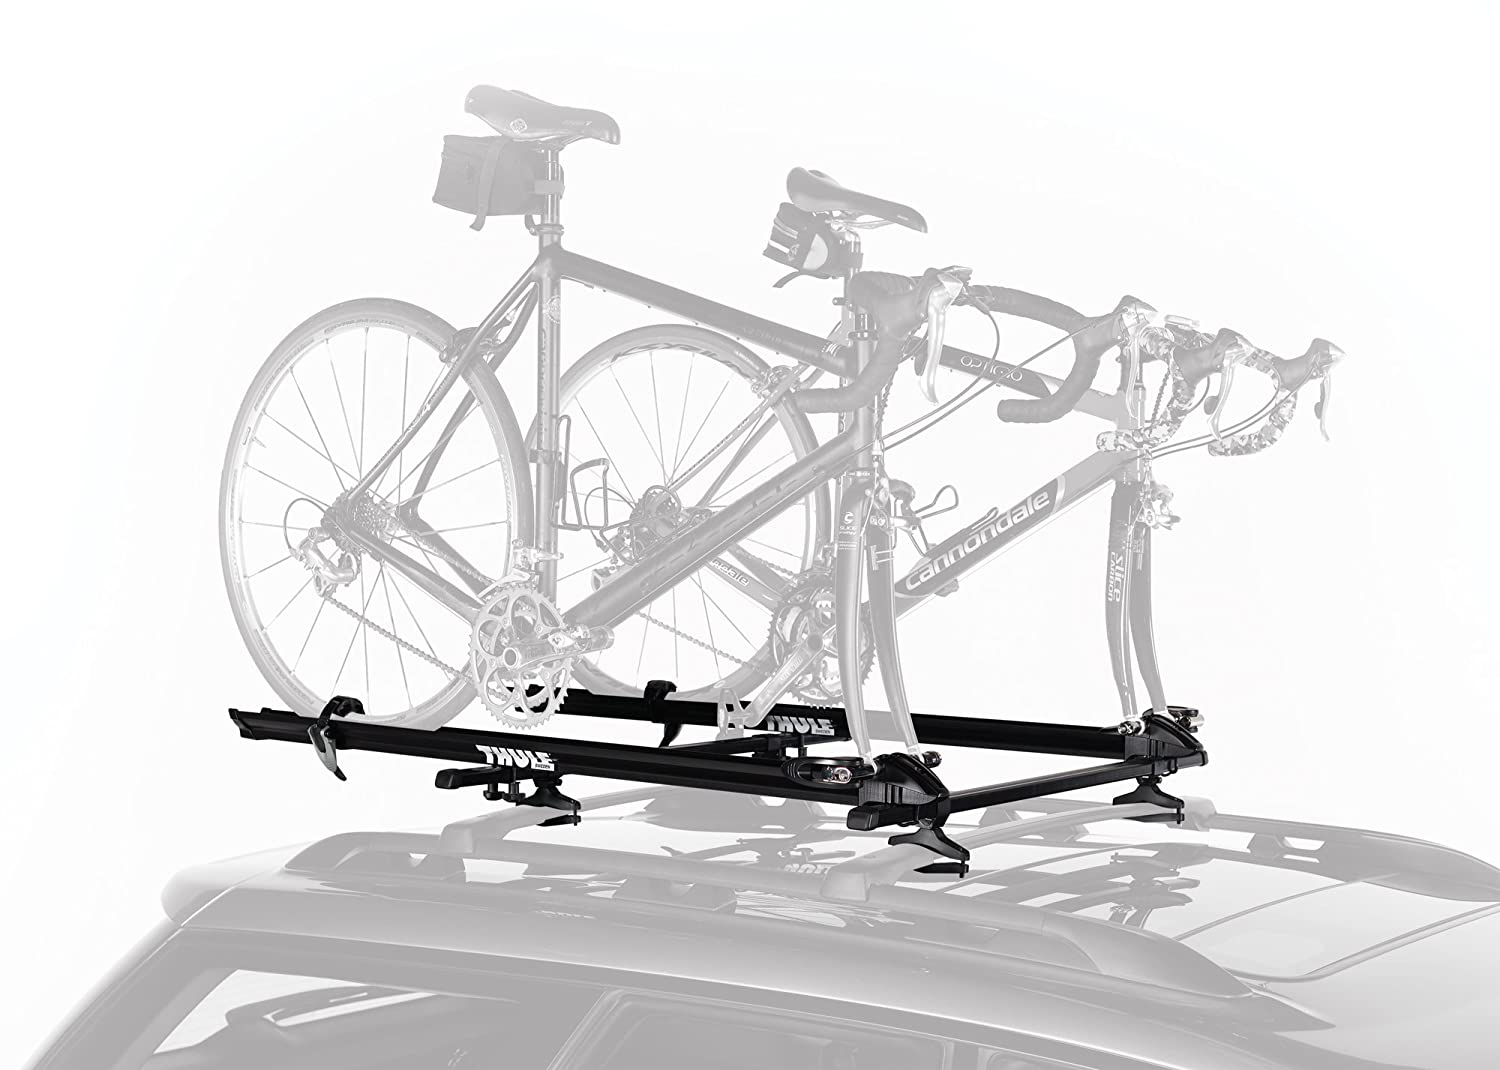 bike roof zm professional online rolle lordgun peruzzo carrier rack